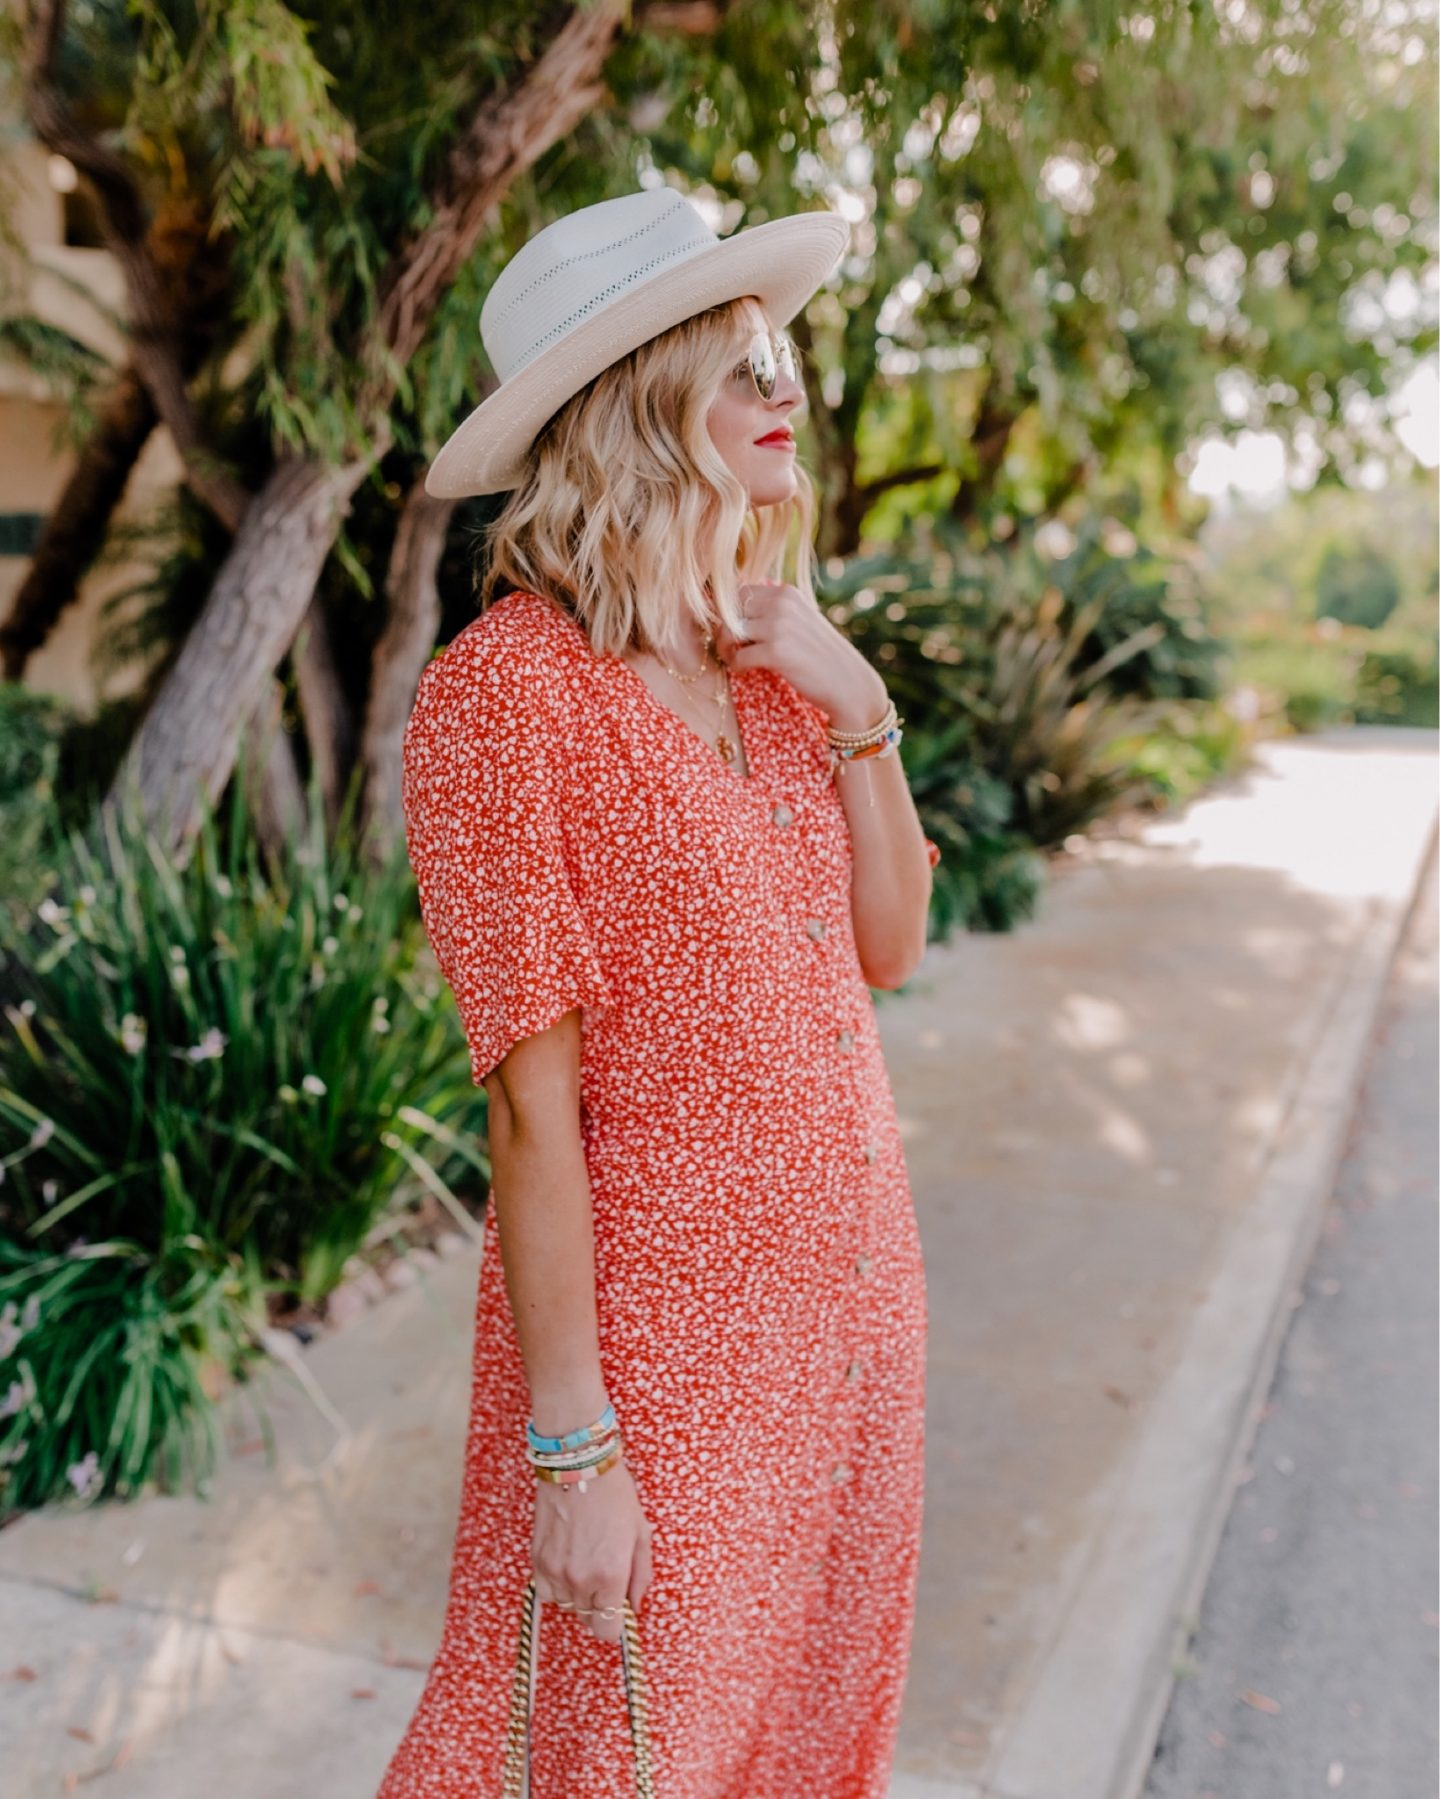 Top Looks of 2020 |Top Looks by San Diego fashion blog, Navy Grace: image of a woman wearing a red and white floral button front dress and white straw fedora hat.